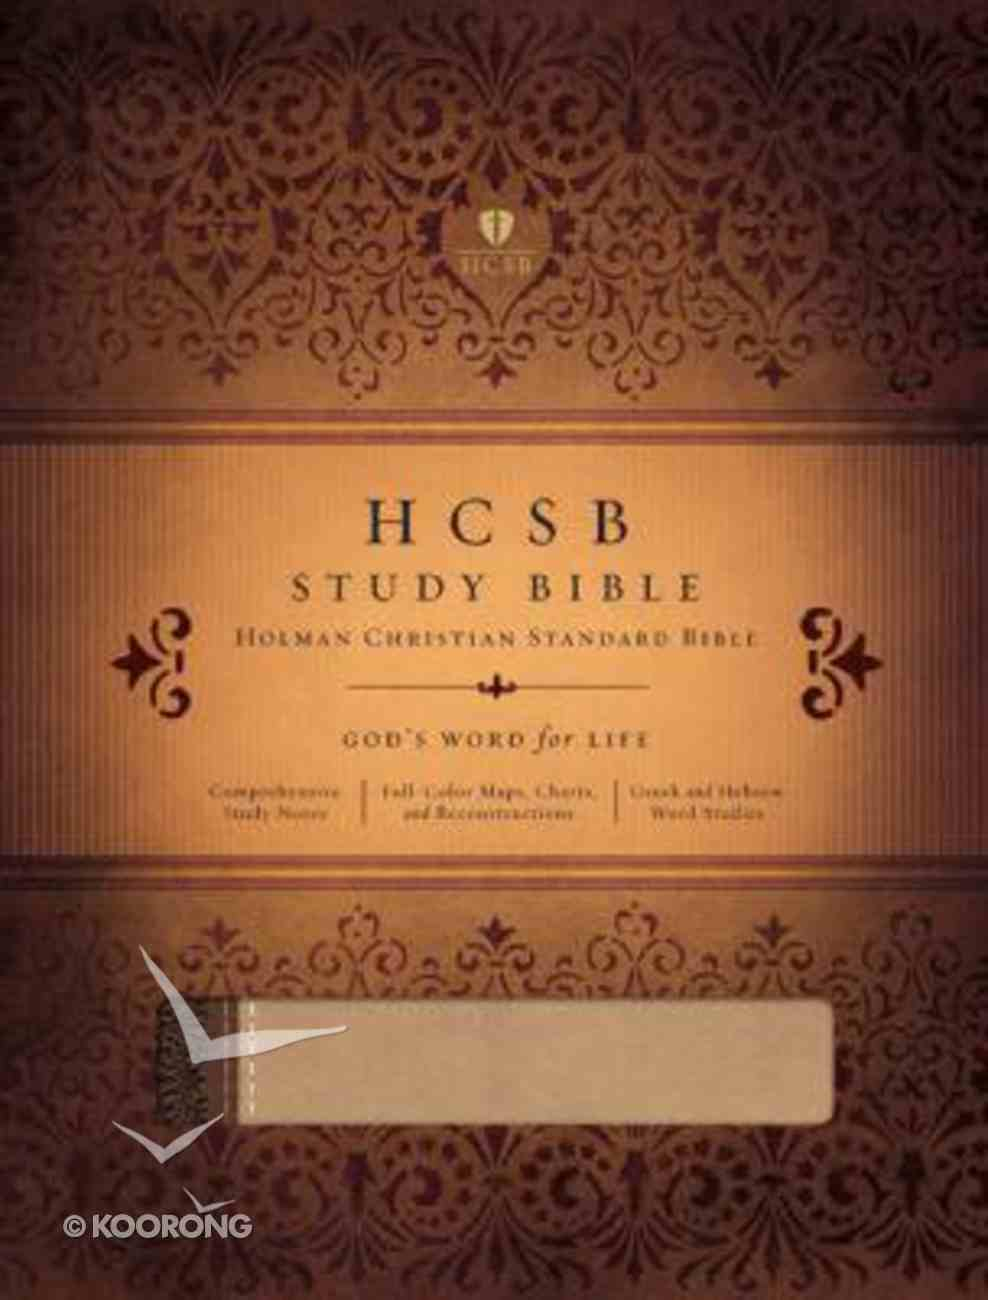 HCSB Study Bible Dark Brown/Taupe Duotone Imitation Leather